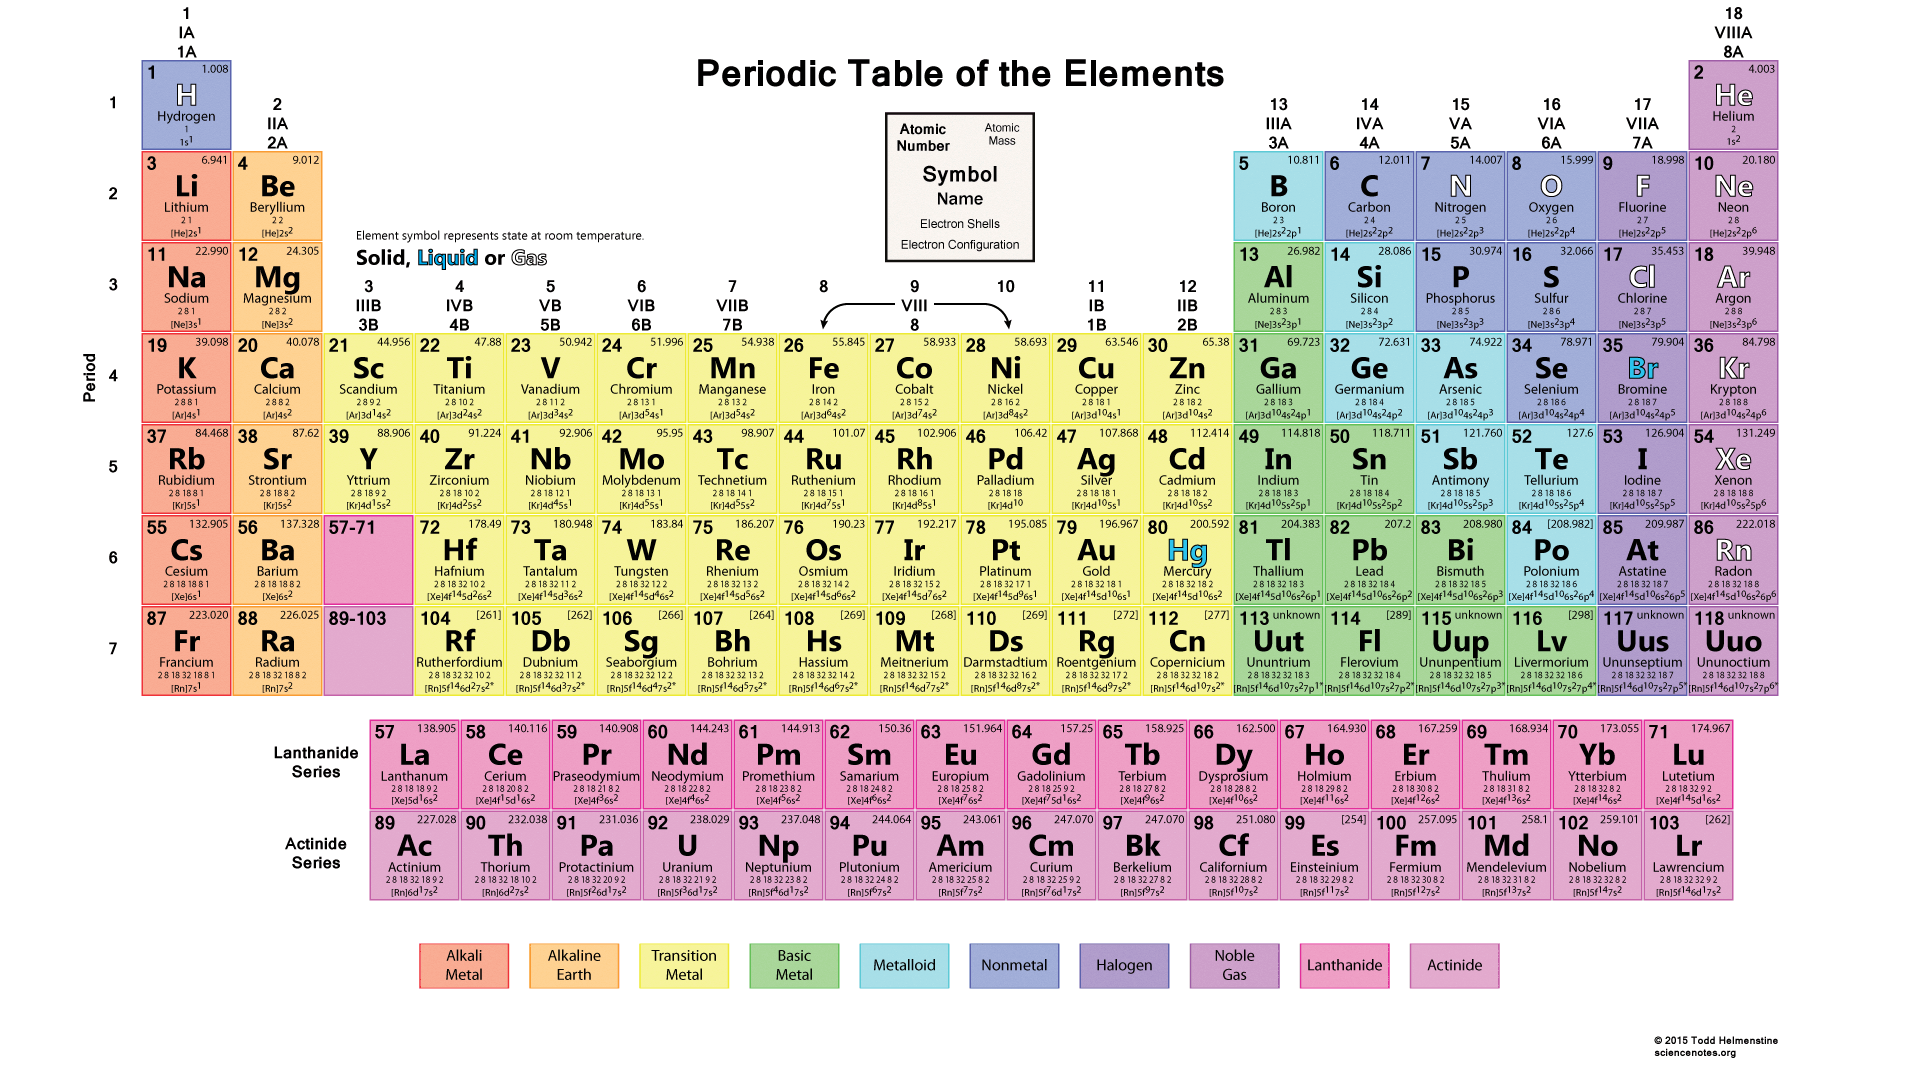 Periodic table 2015 collection for 10 elements of the periodic table